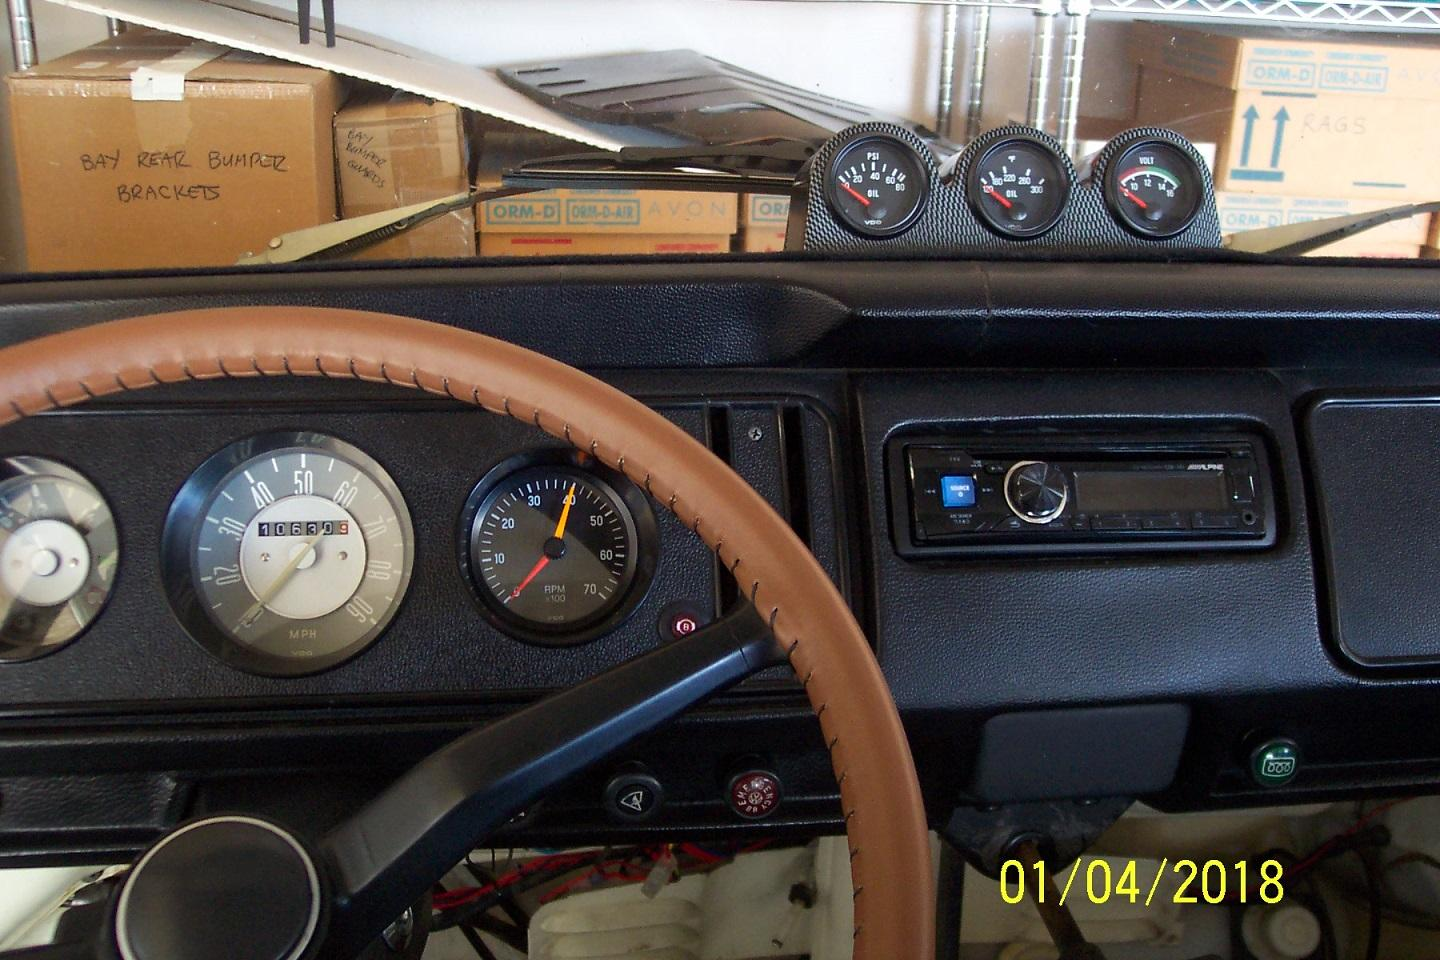 Bay Window Bus View Topic Tachometers And Other 1968 Roadrunner Wiring Diagram Also Fuel Gauge Image May Have Been Reduced In Size Click To Fullscreen